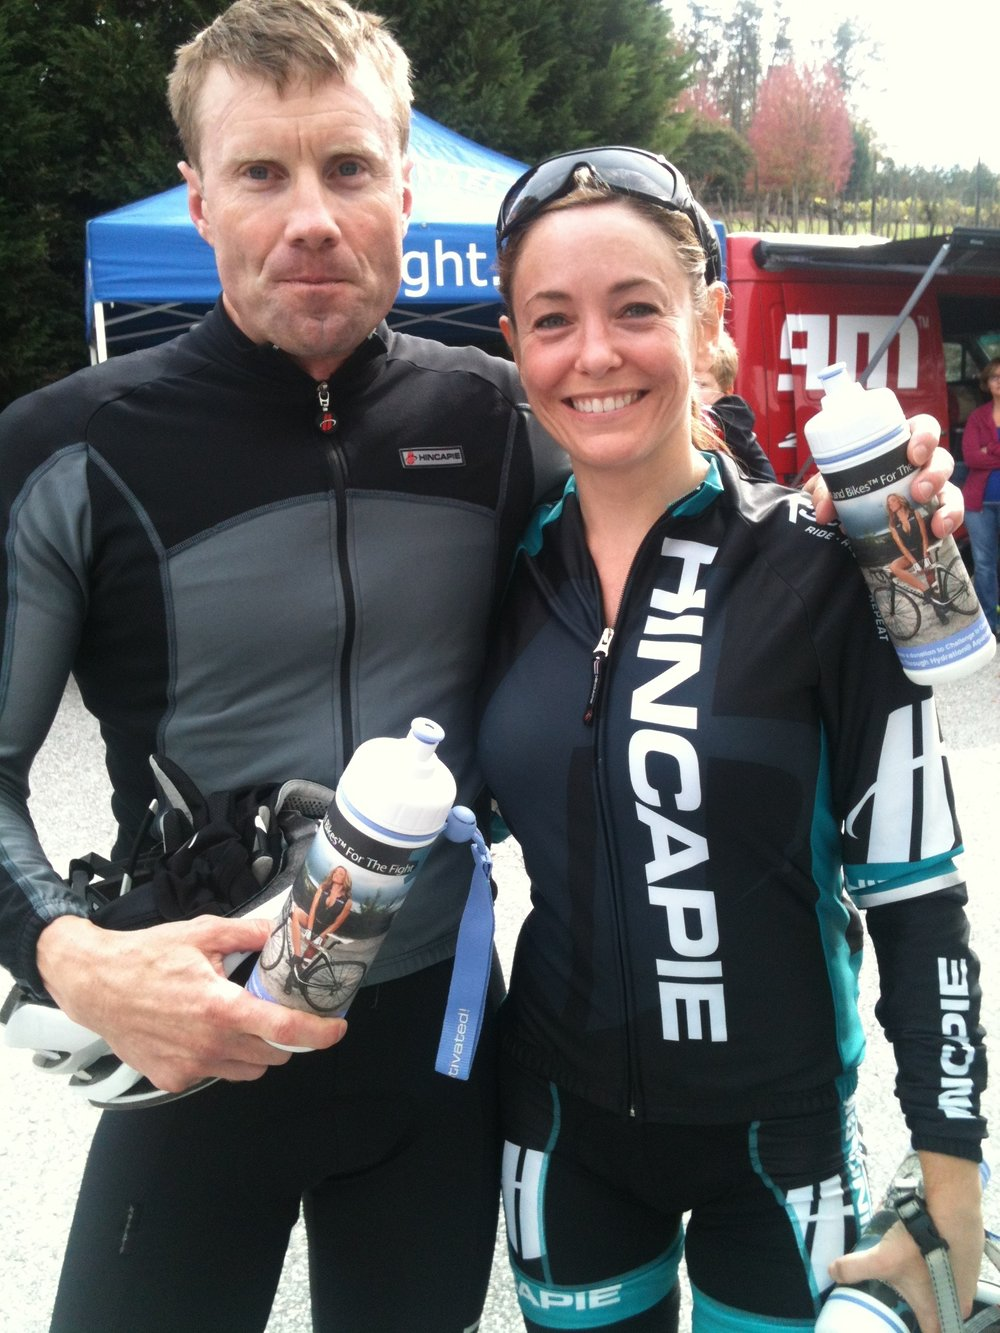 hincapie couple with bottles.JPG